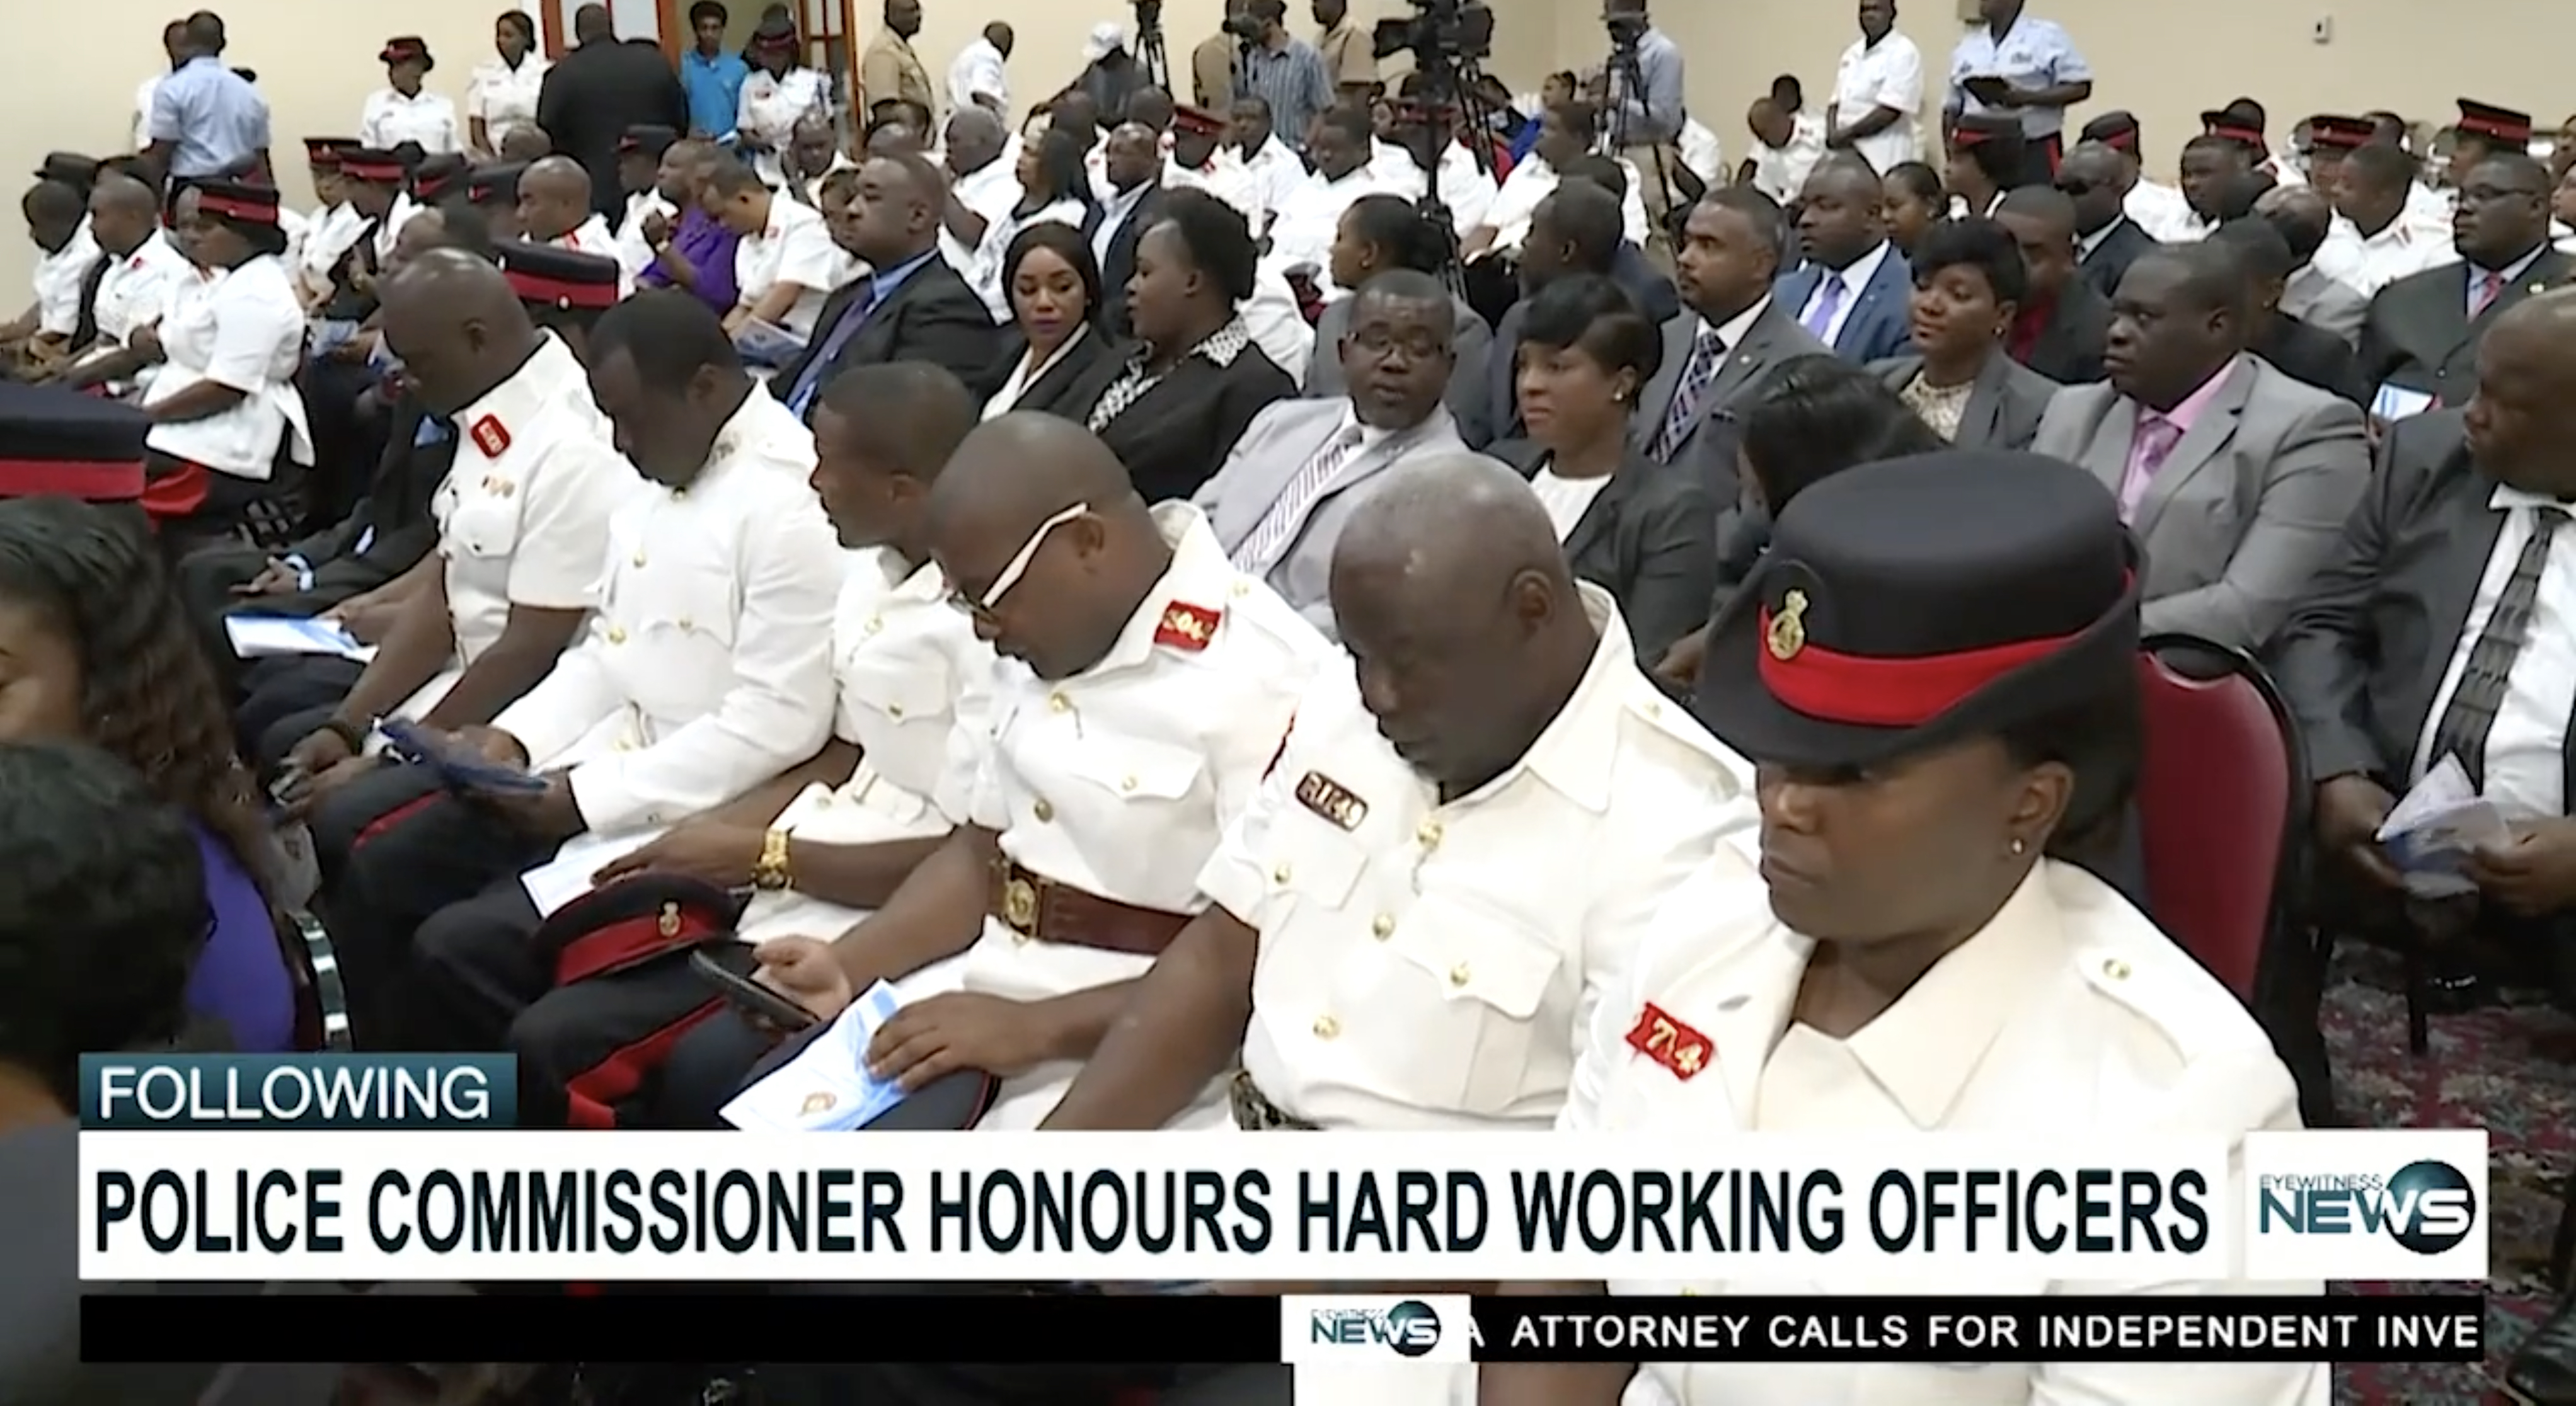 Police Commissioner commends hundreds of officers